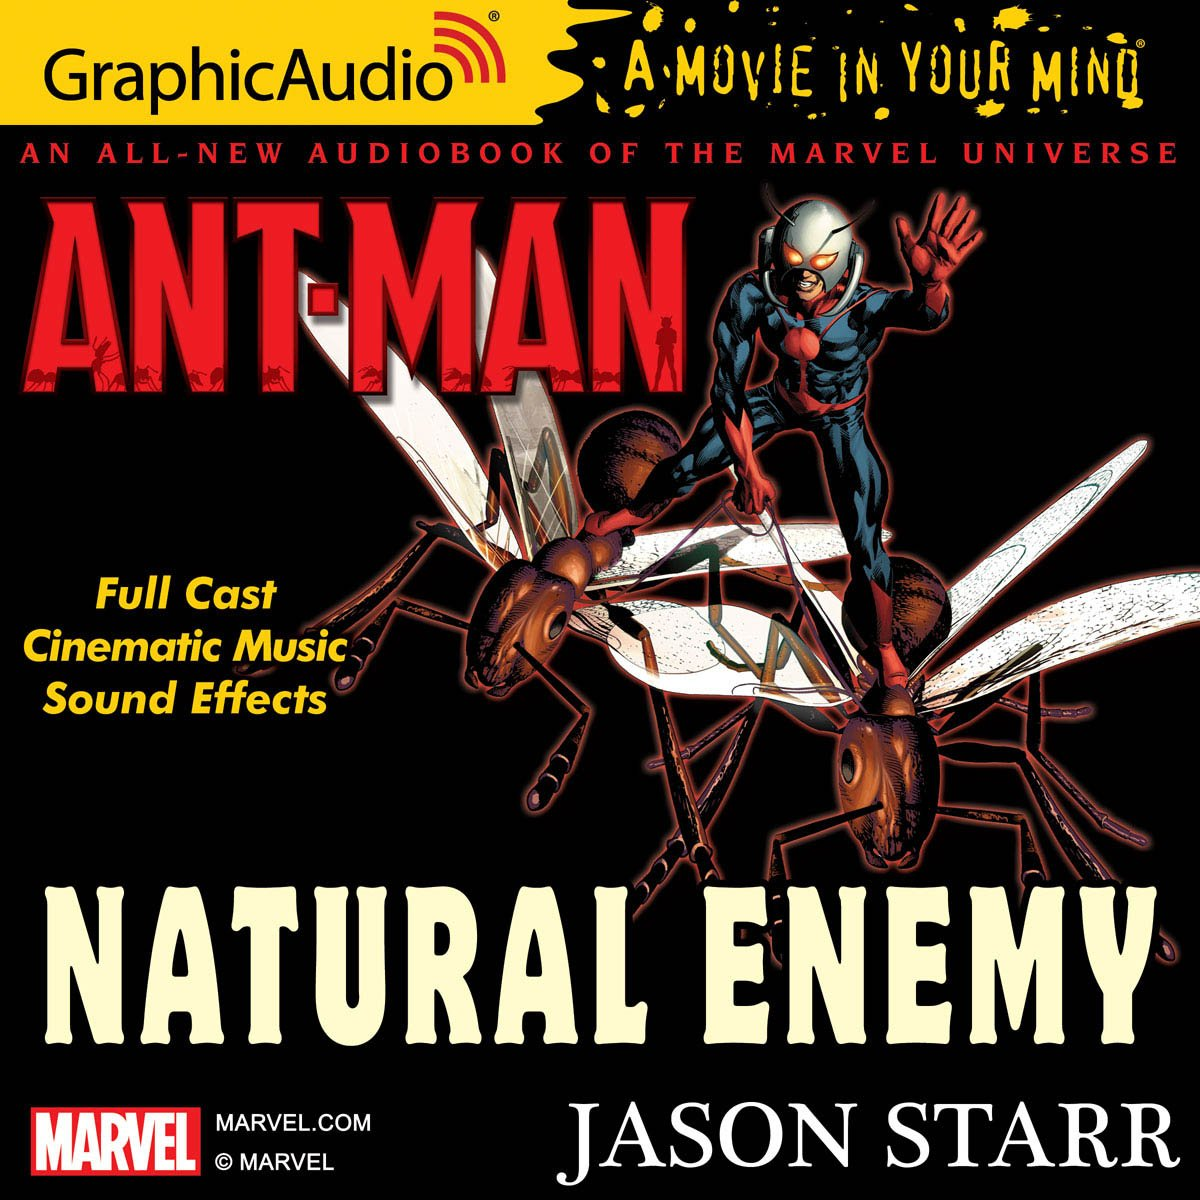 Listen to Ant-Man: Natural Enemy by @JasonStarrBooks at GraphicAudio  produced with a full cast! Save 60% off with coupon: LASTCALL ...